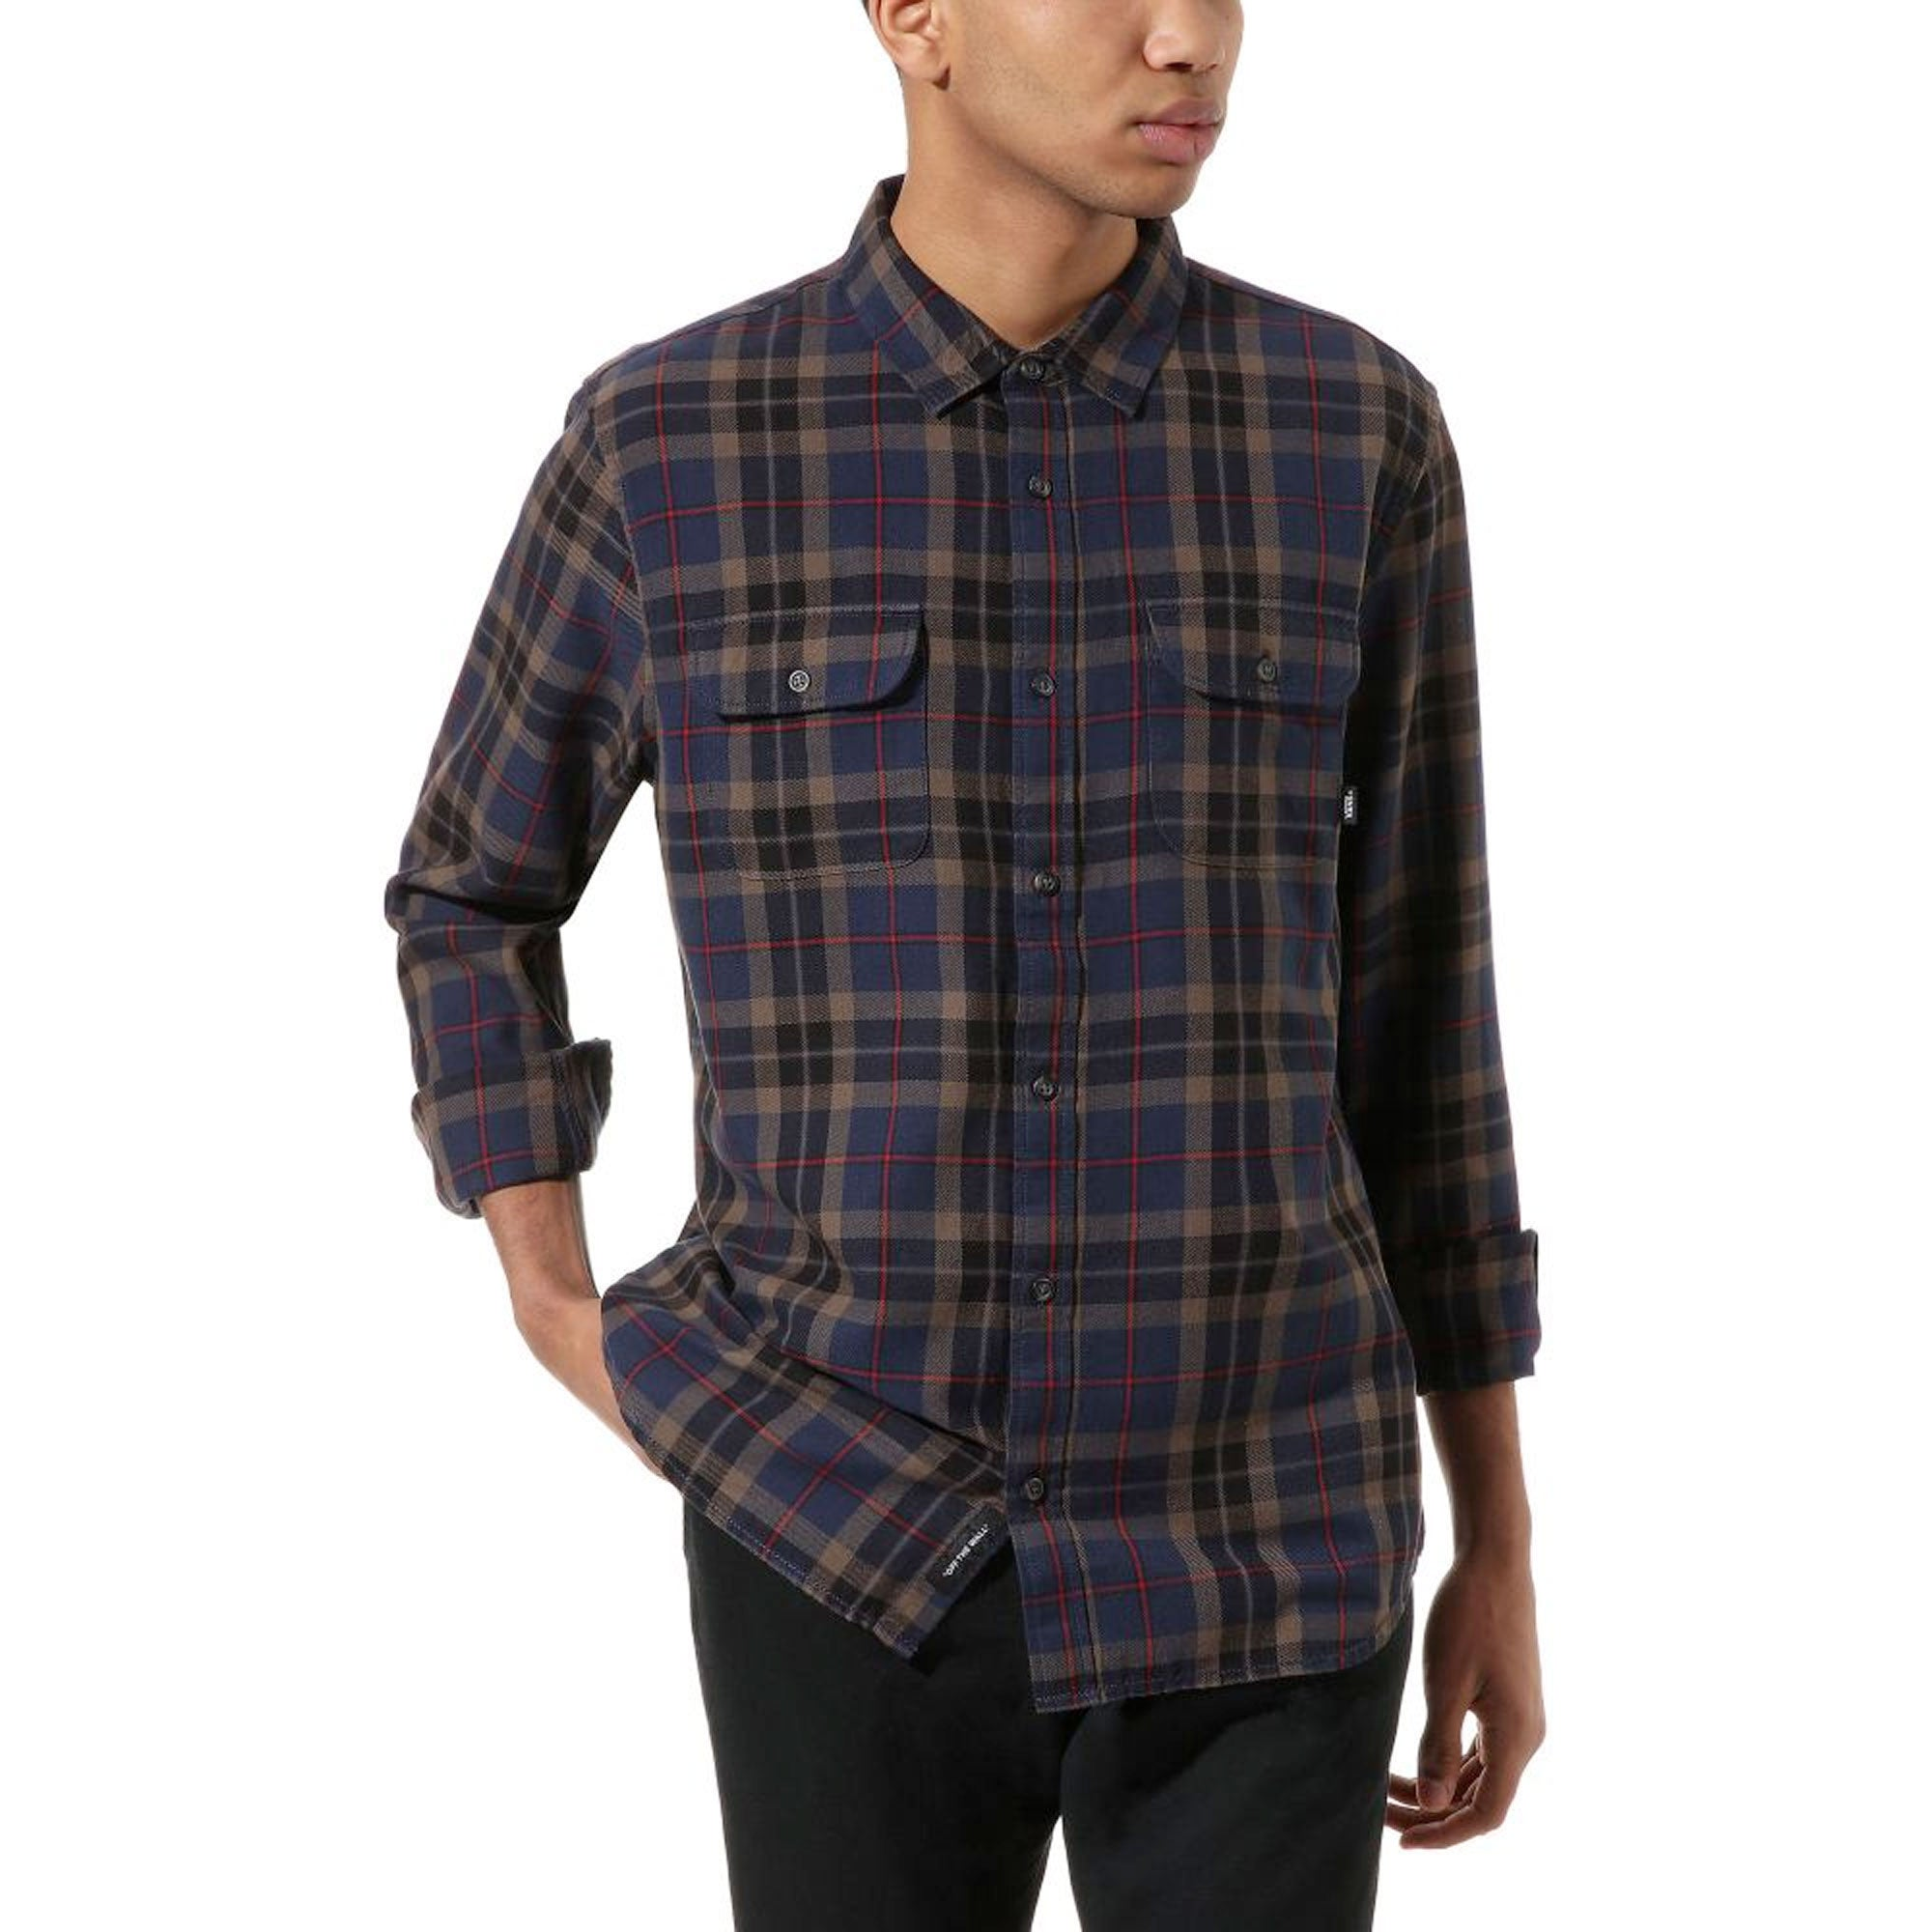 Vans Sycamore Men's Flannel Shirt